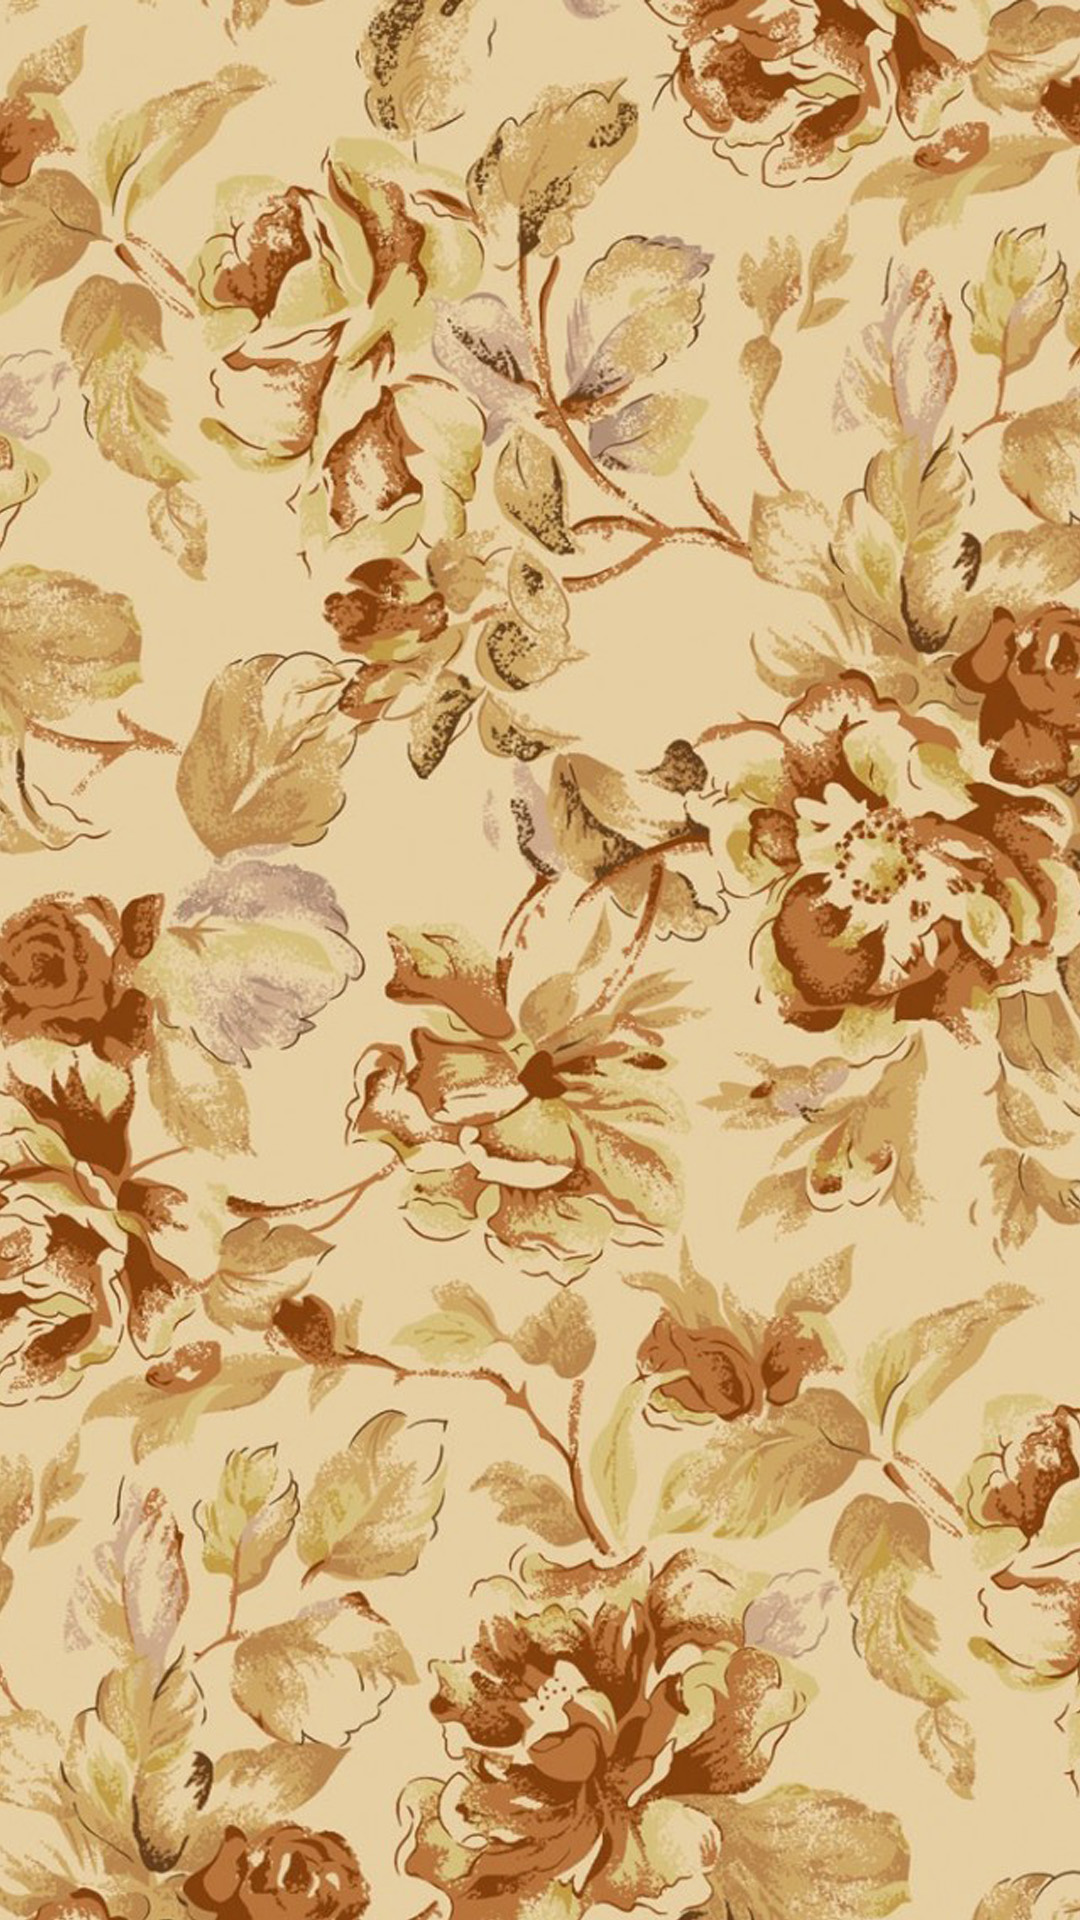 Antique Floral Print Iphone Wallpaper